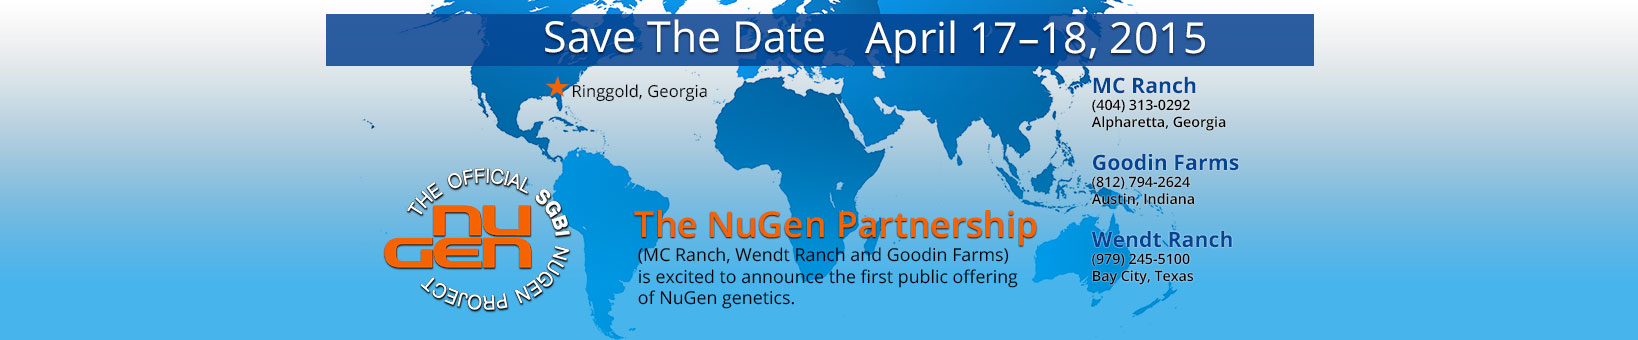 NuGen Foundation Sale: Save the Date – April 17-18, 2015